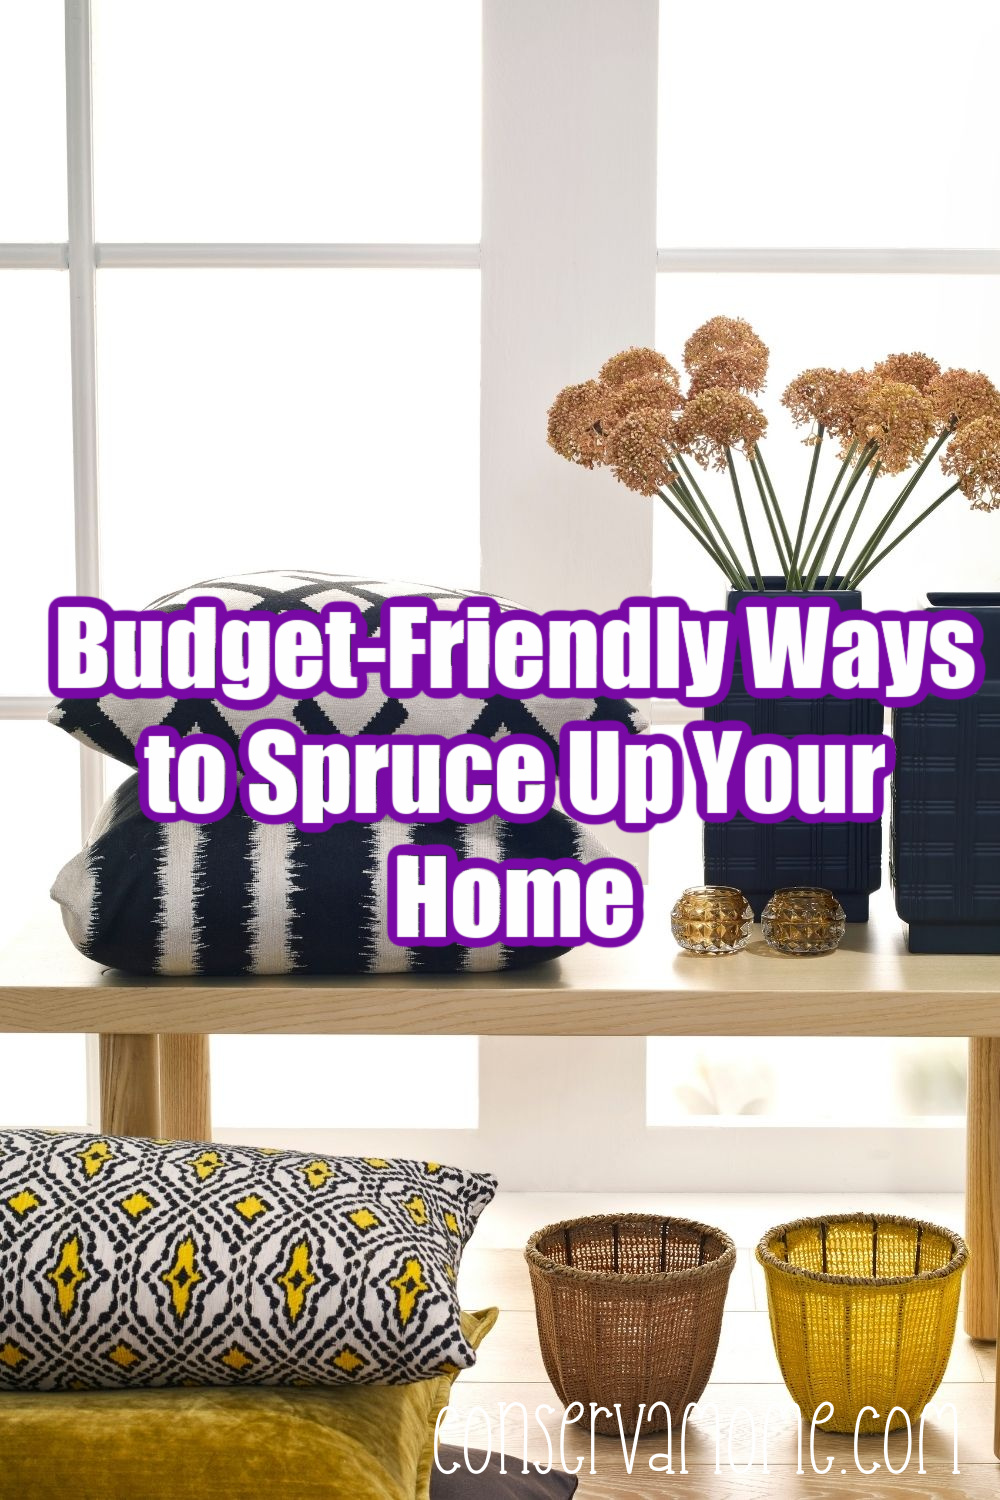 Budget-Friendly Ways to Spruce Up Your Home